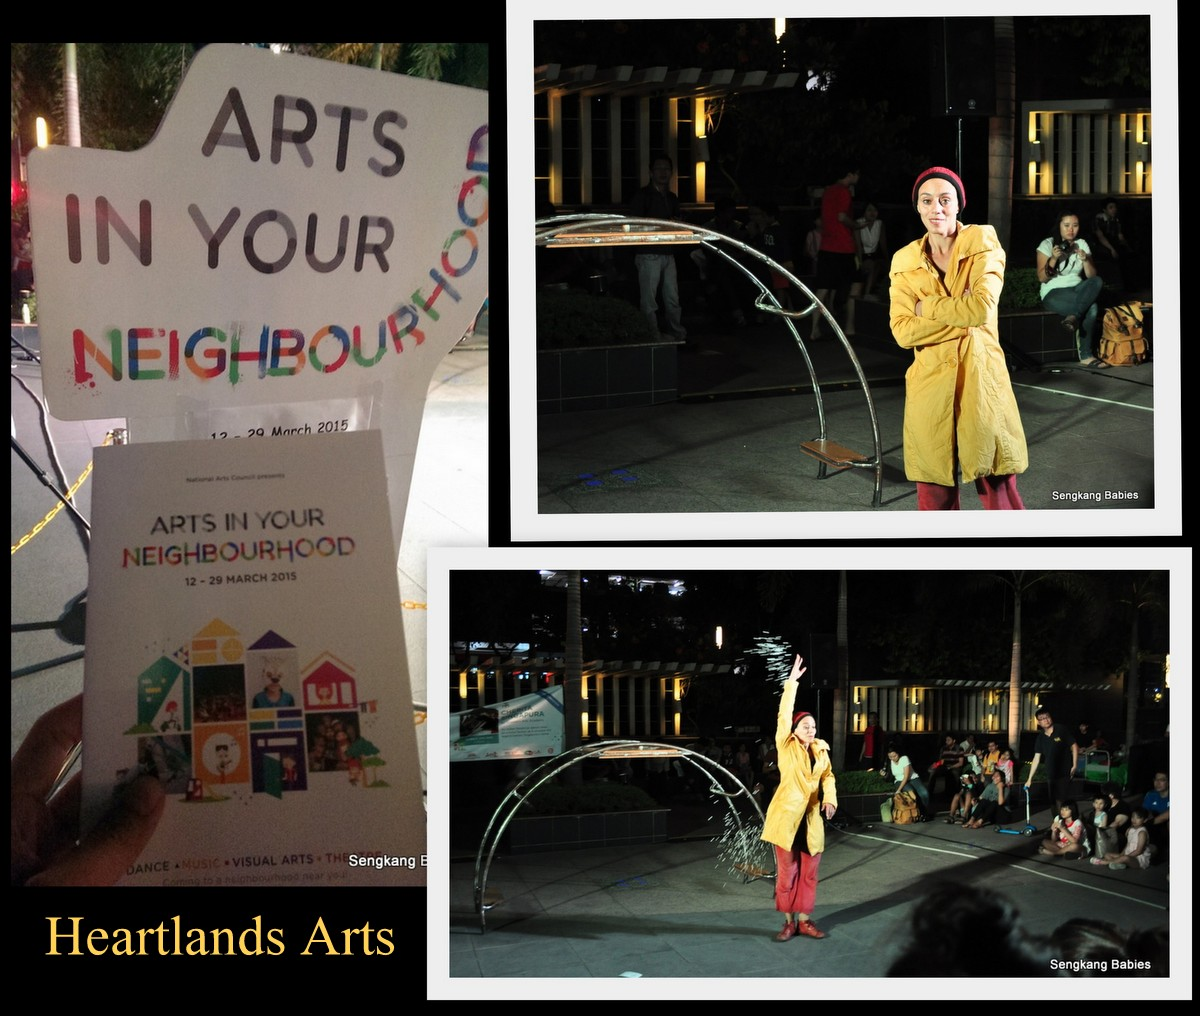 NAC Arts for All